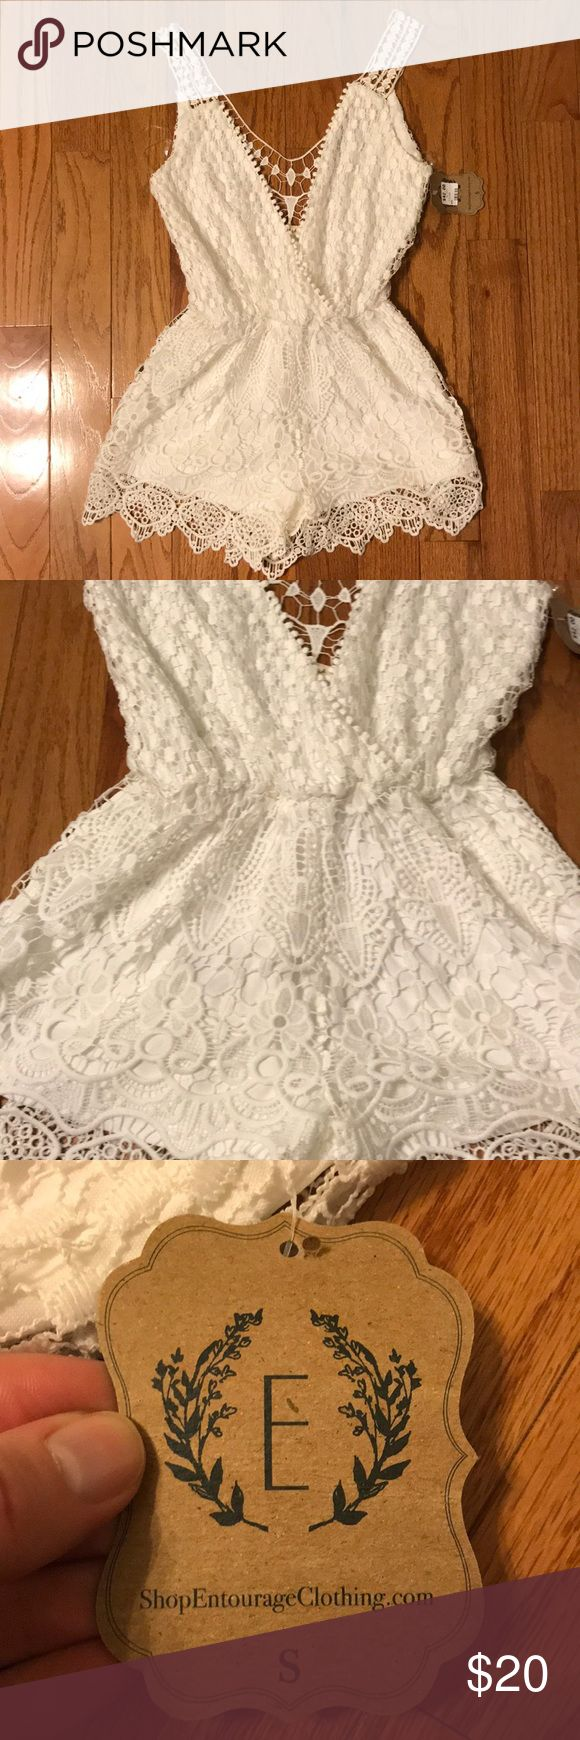 Illa Illa White Crochet Romper Size Small NWT Illa Illa White Crochet Romper Size Small. Purchased from a boutique and never got to wear, beautiful details would be perfect for this Spring and Summer! Fully Lined Romper. New With Tags, asking $20. Smoke Free Home Illa Illa Dresses